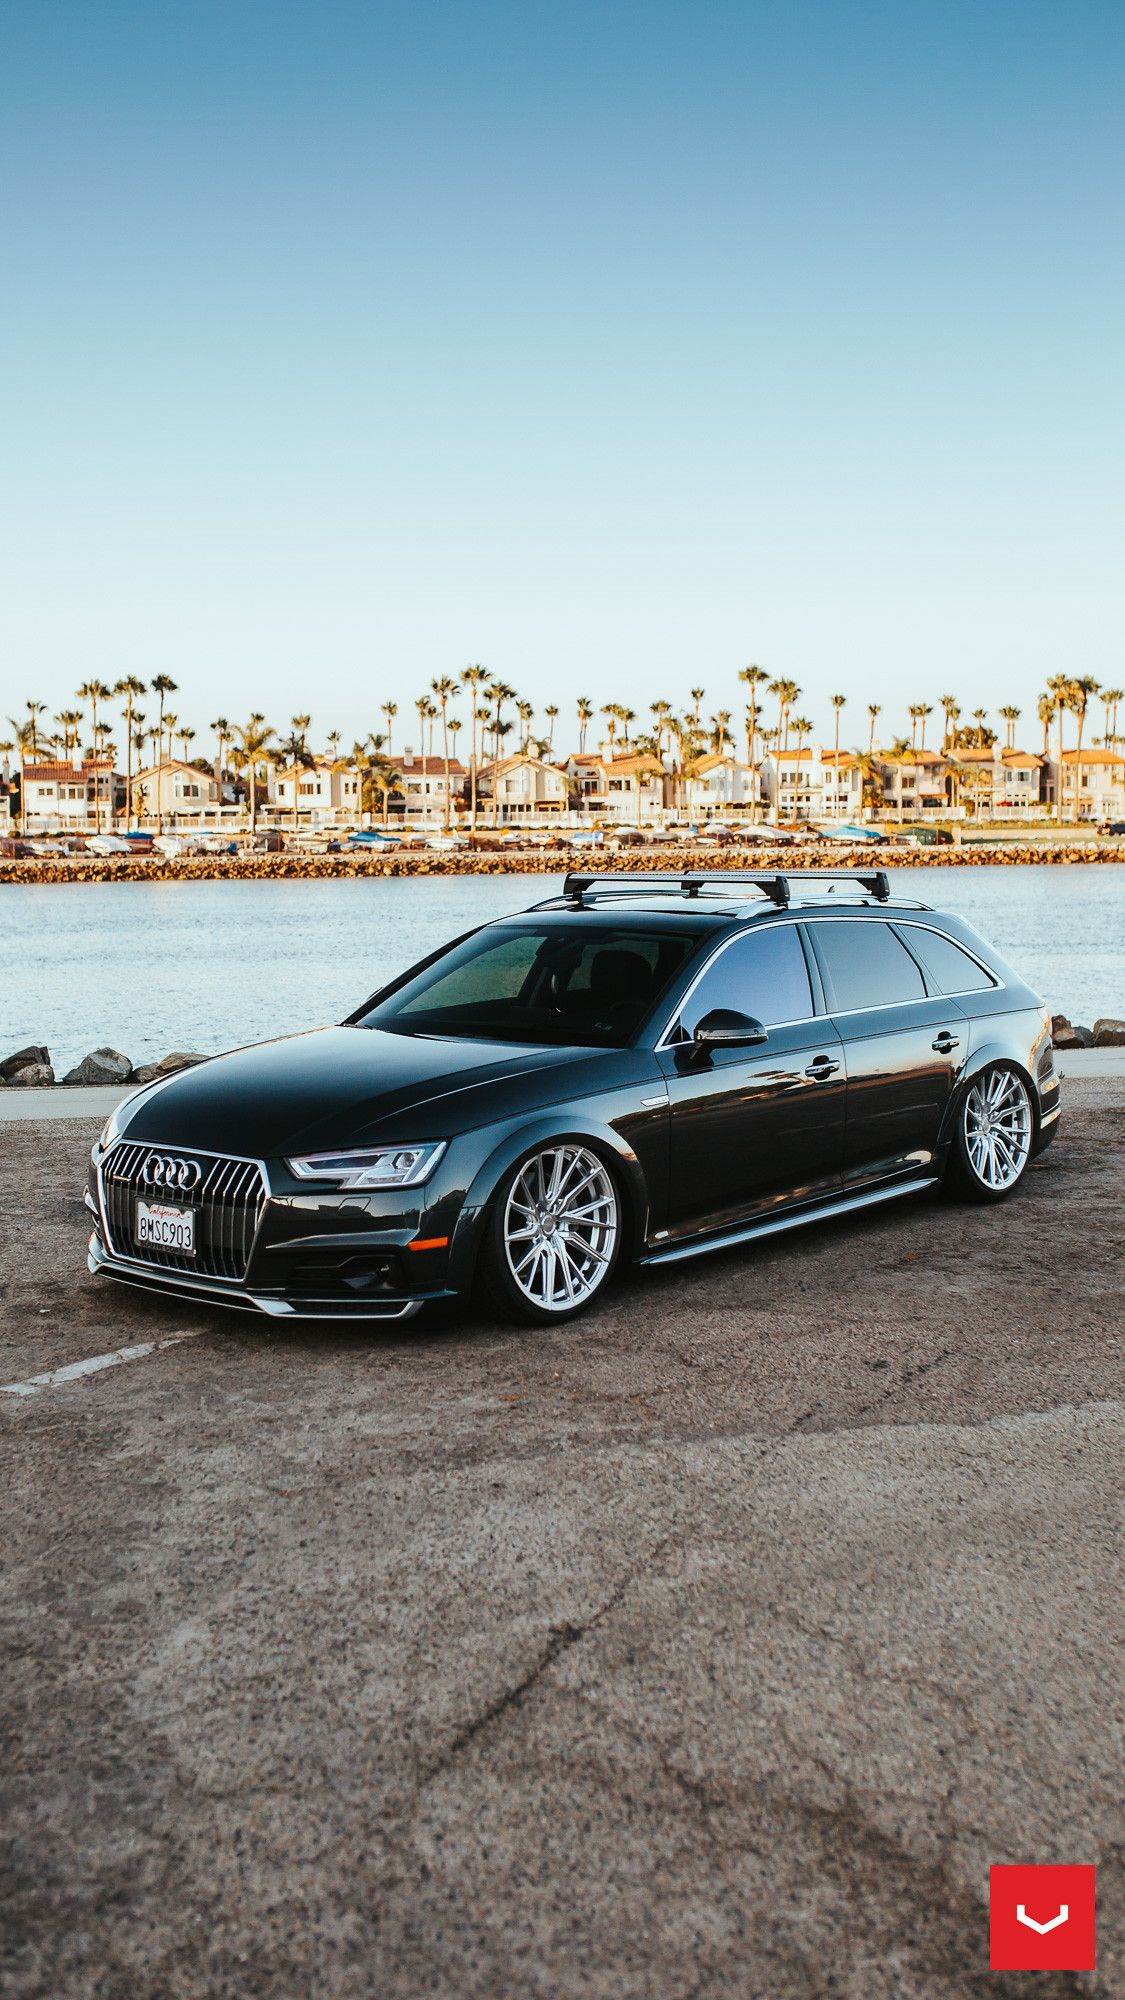 Audi A4 Allroad Hybrid Forged Series Hf 4t C Vossen Wheels 2020 54 In 2020 Vossen Vossen Wheels Audi A4